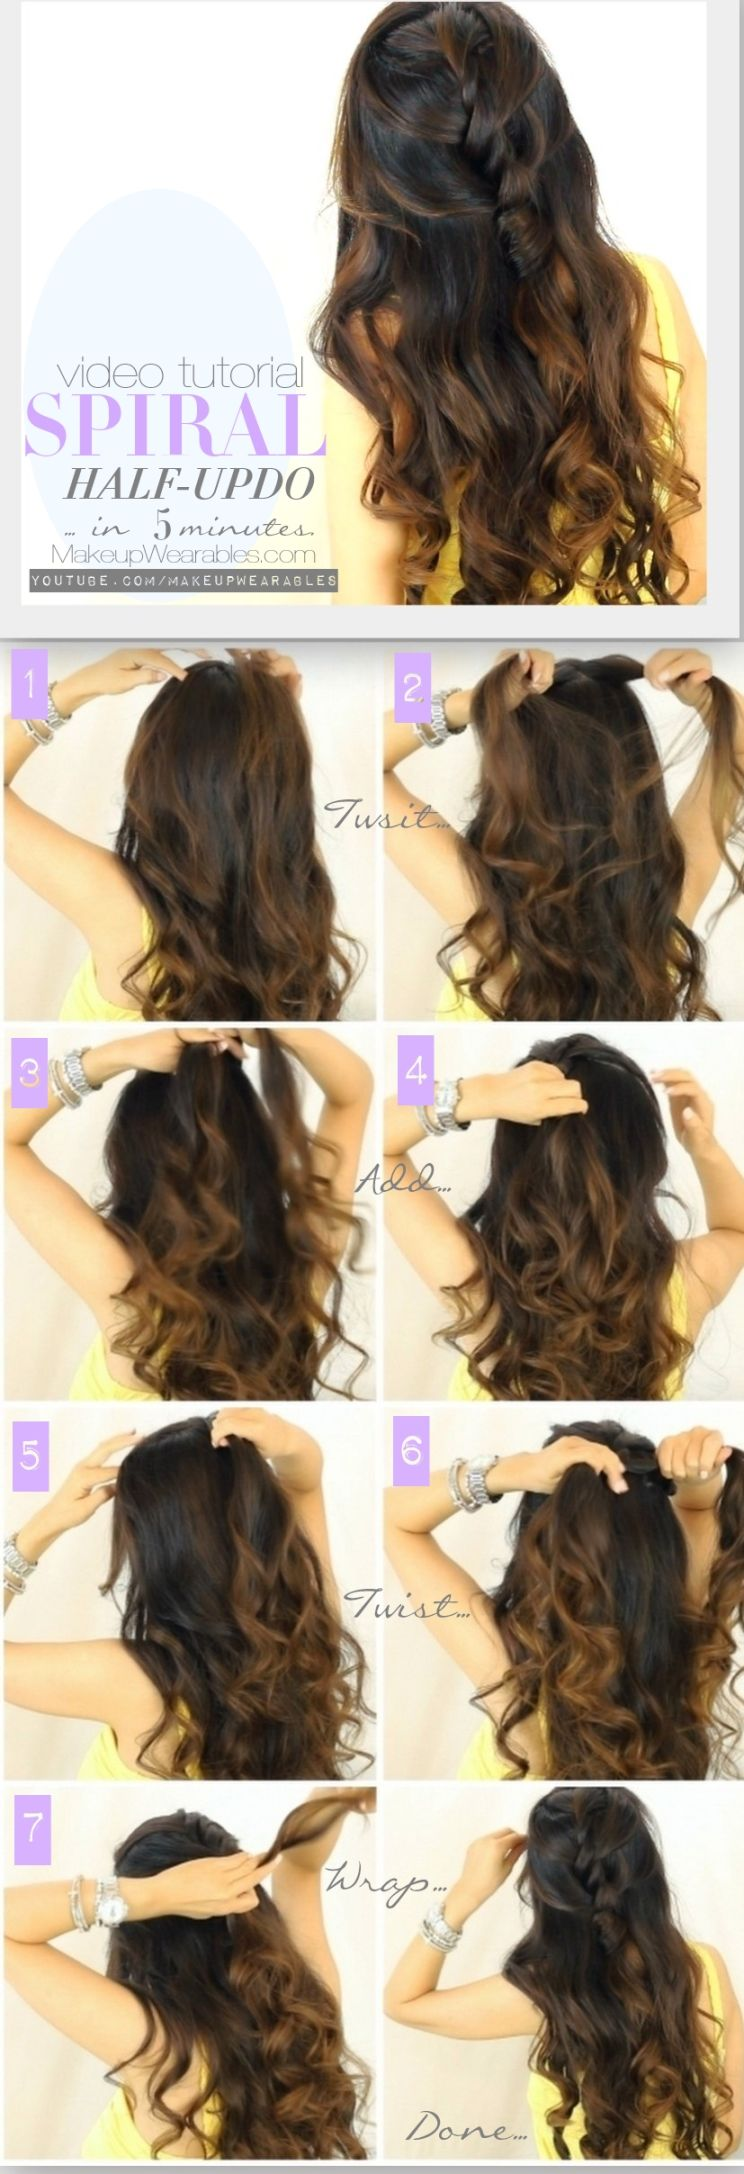 Groovy 1000 Images About Prom Hair On Pinterest Daily Hairstyles Prom Short Hairstyles Gunalazisus